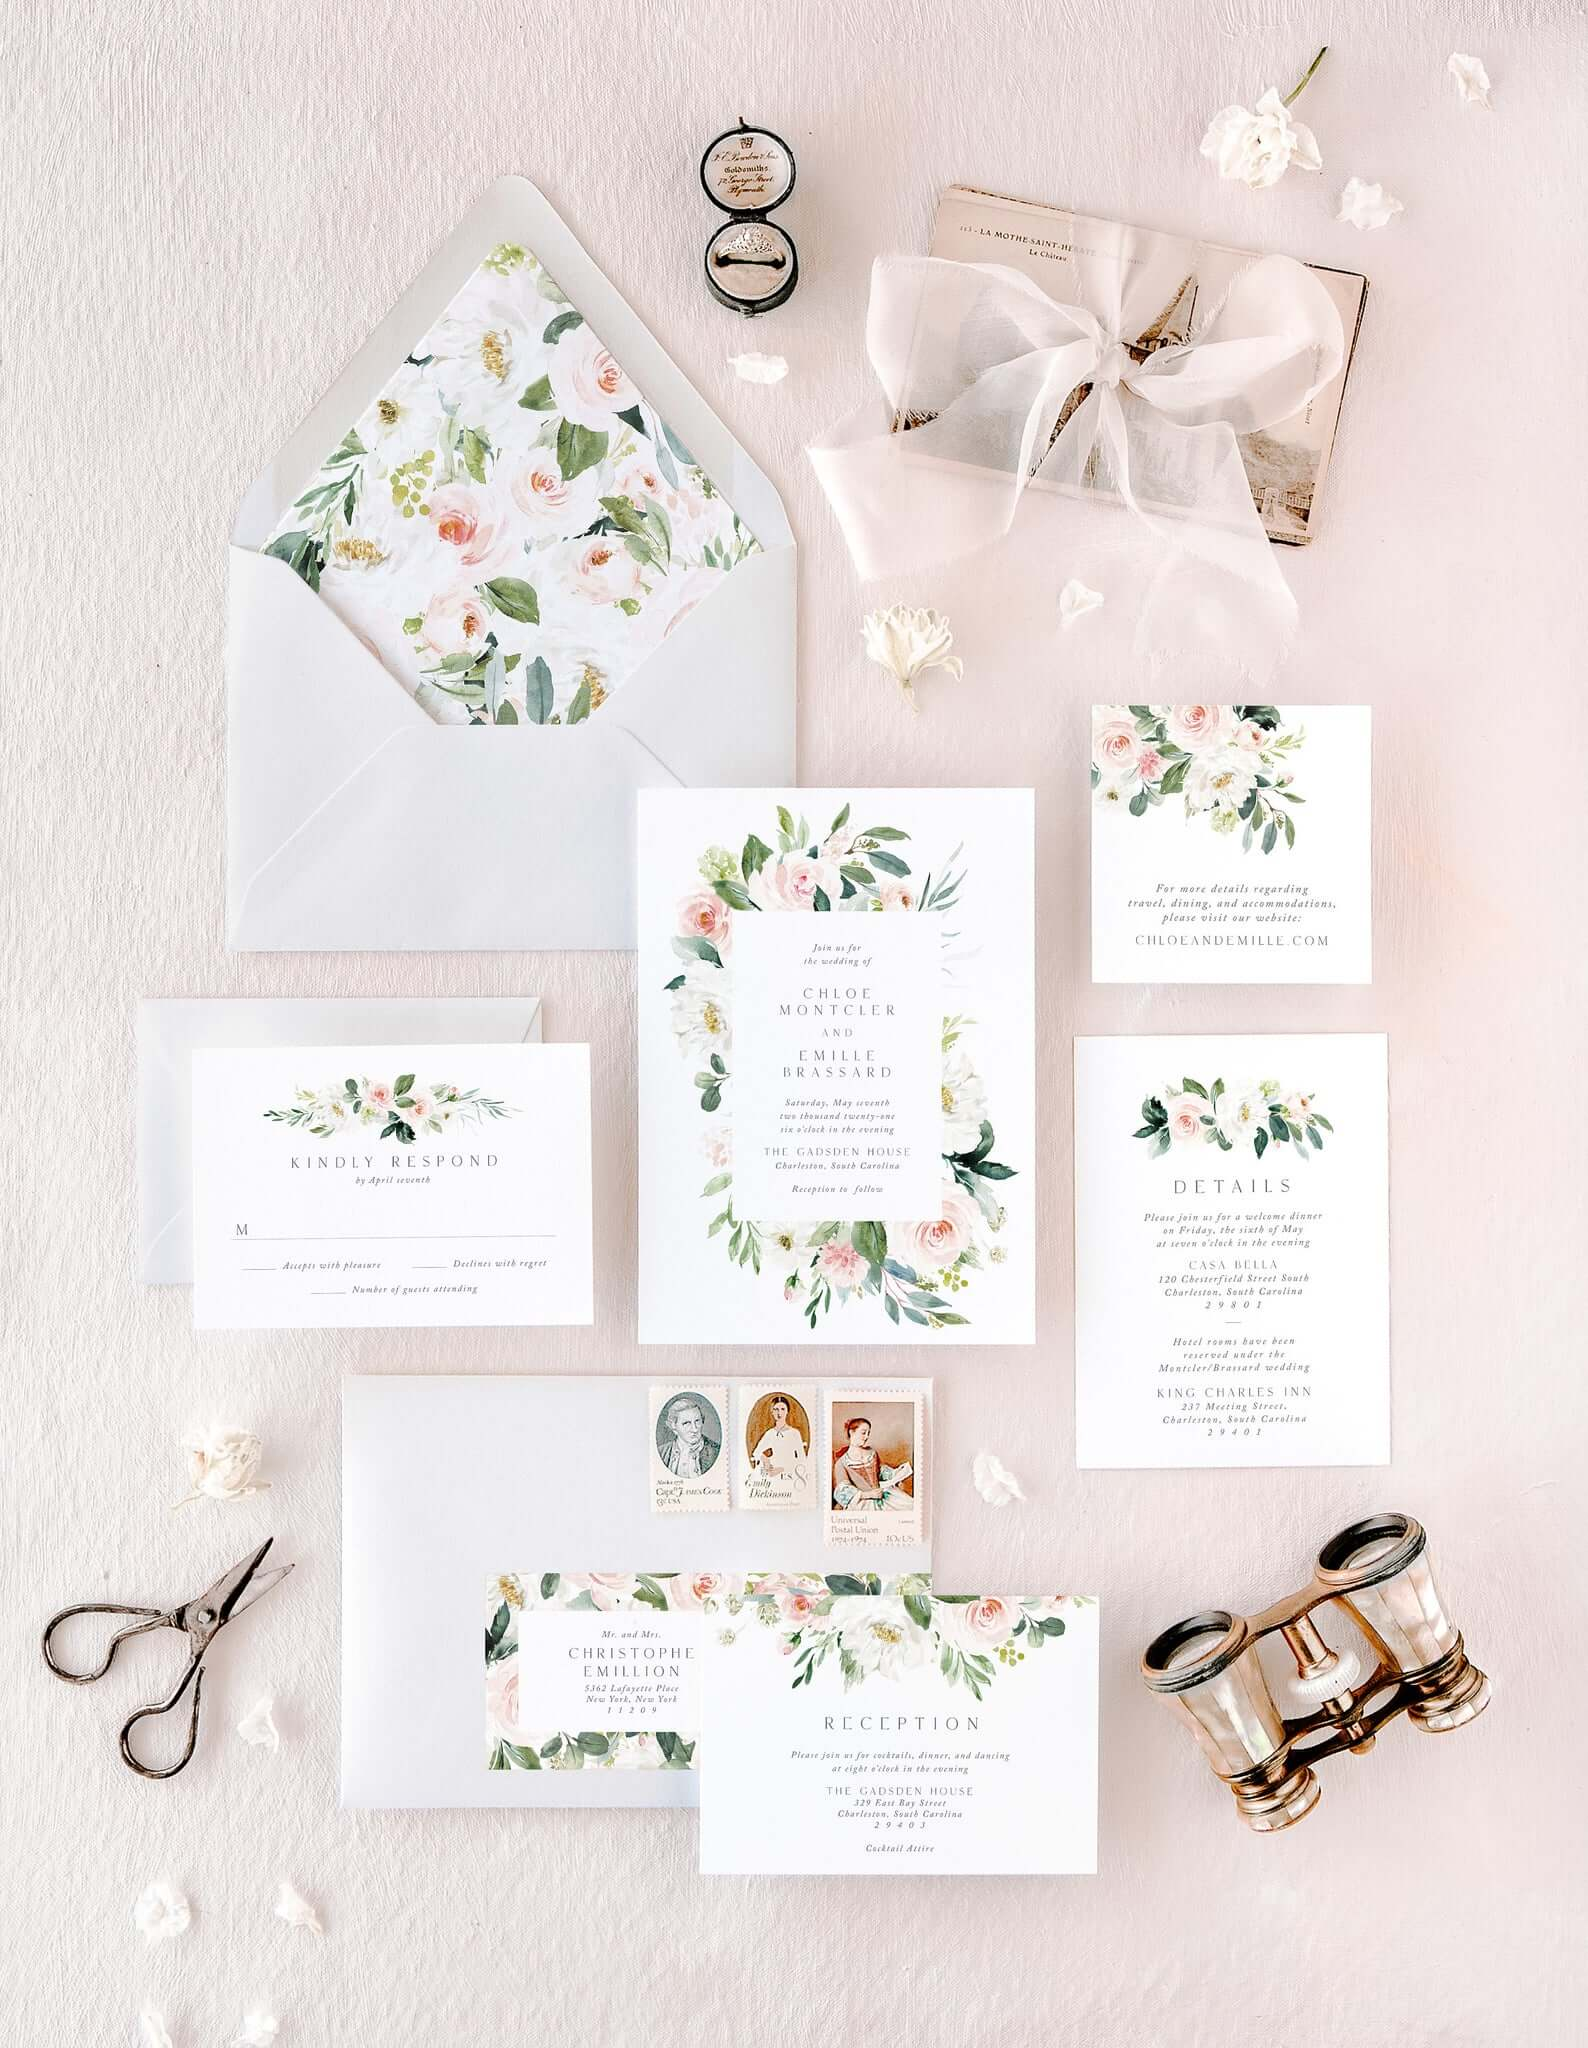 margaux paperie via etsy